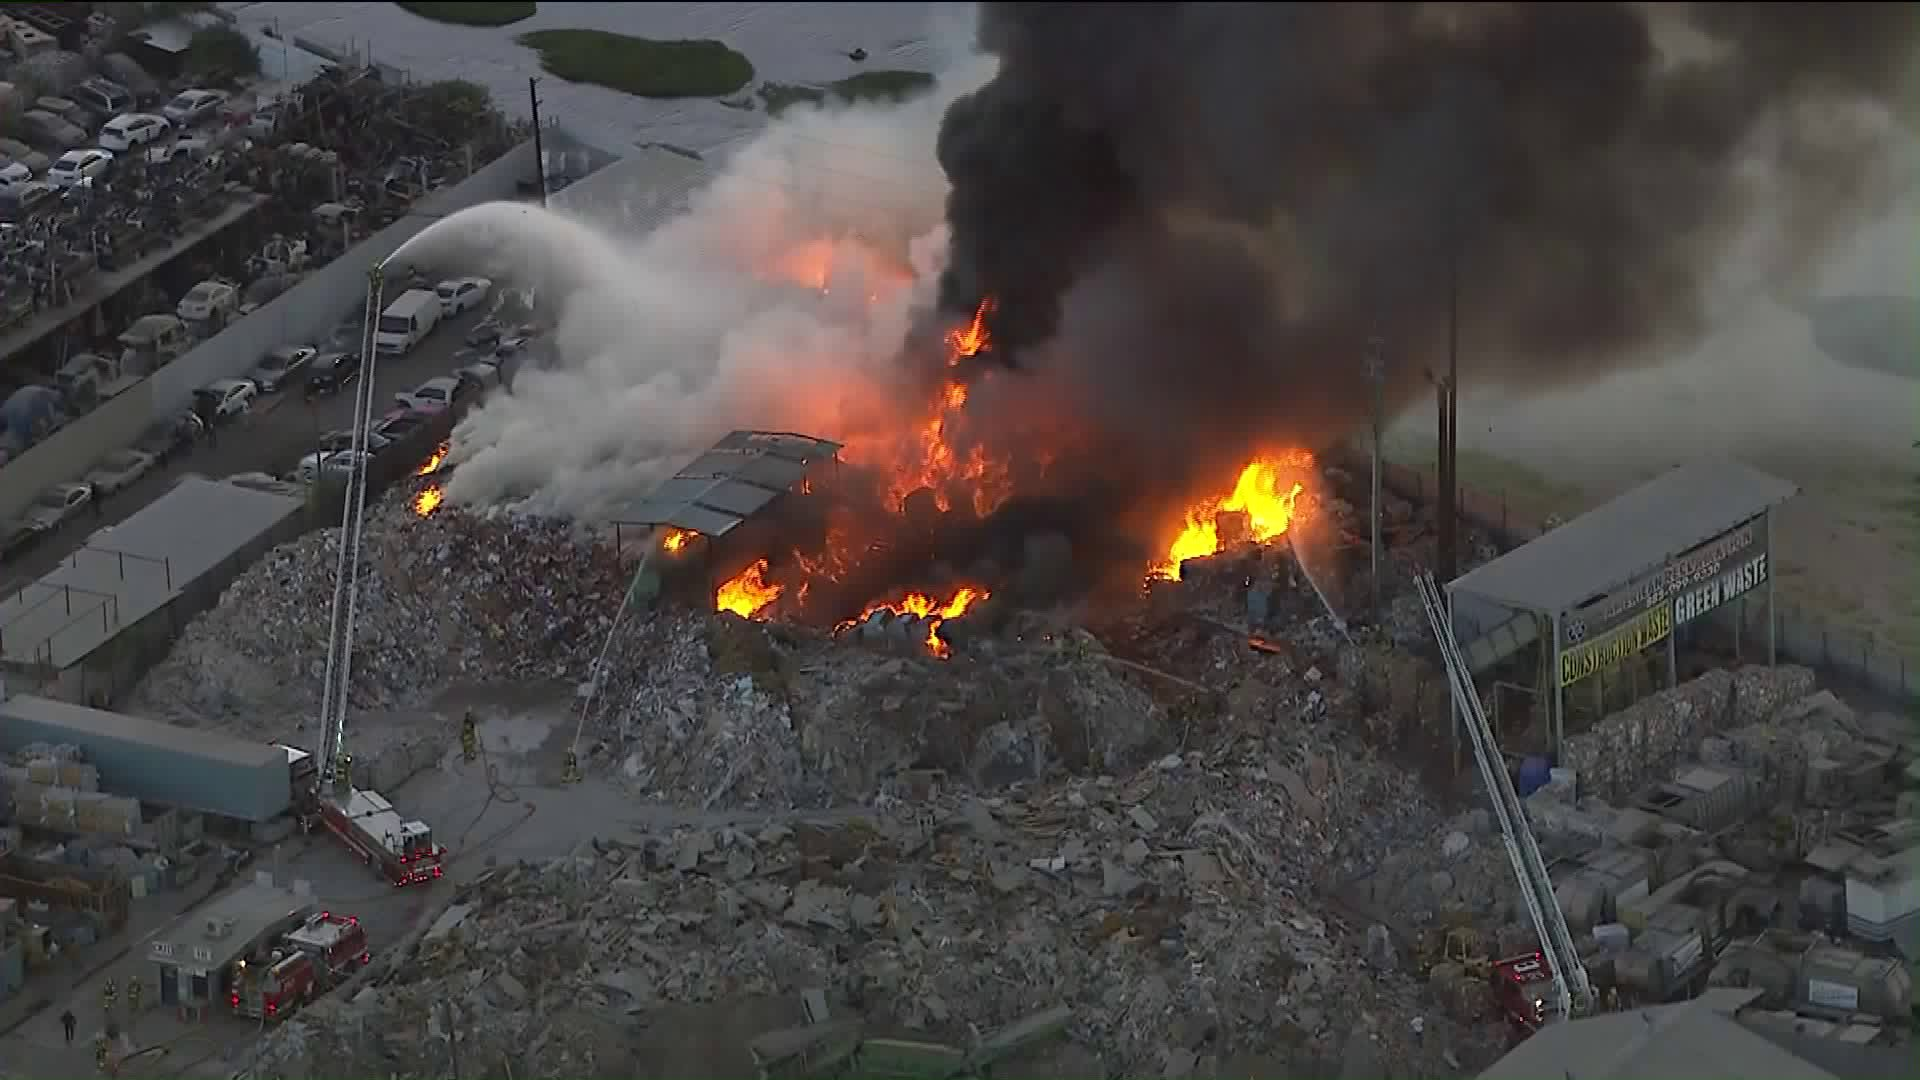 A fire broke out at a recycling yard in Atwater Village on Nov. 1, 2019. (Credit: KTLA)